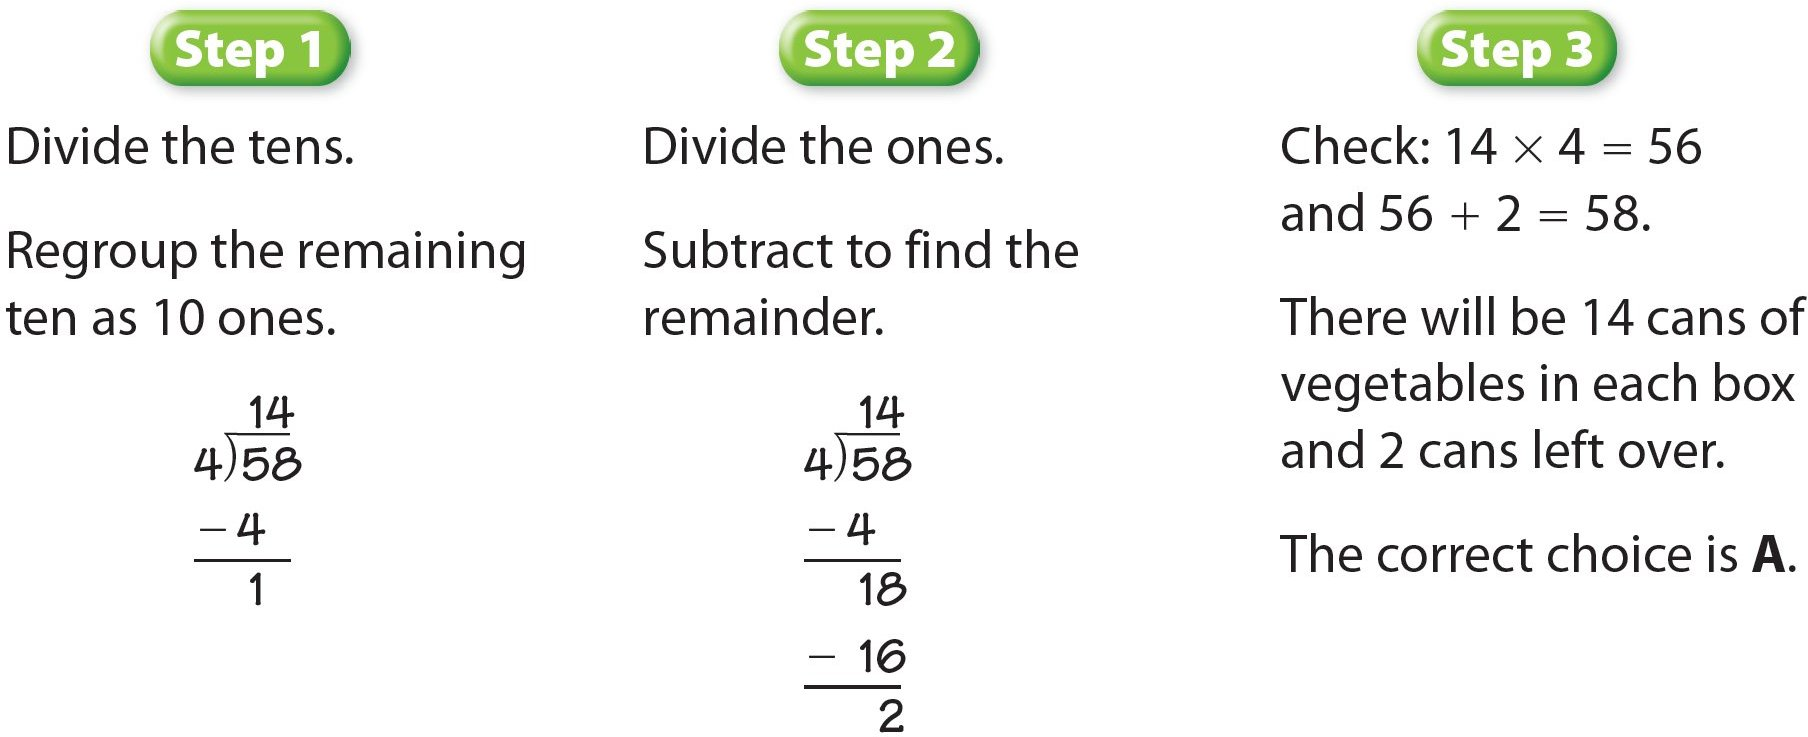 Worksheet How To Do Long Division Step By Step For Kids mathml in daisy structure guidelines long division steps for 58 divided by 4